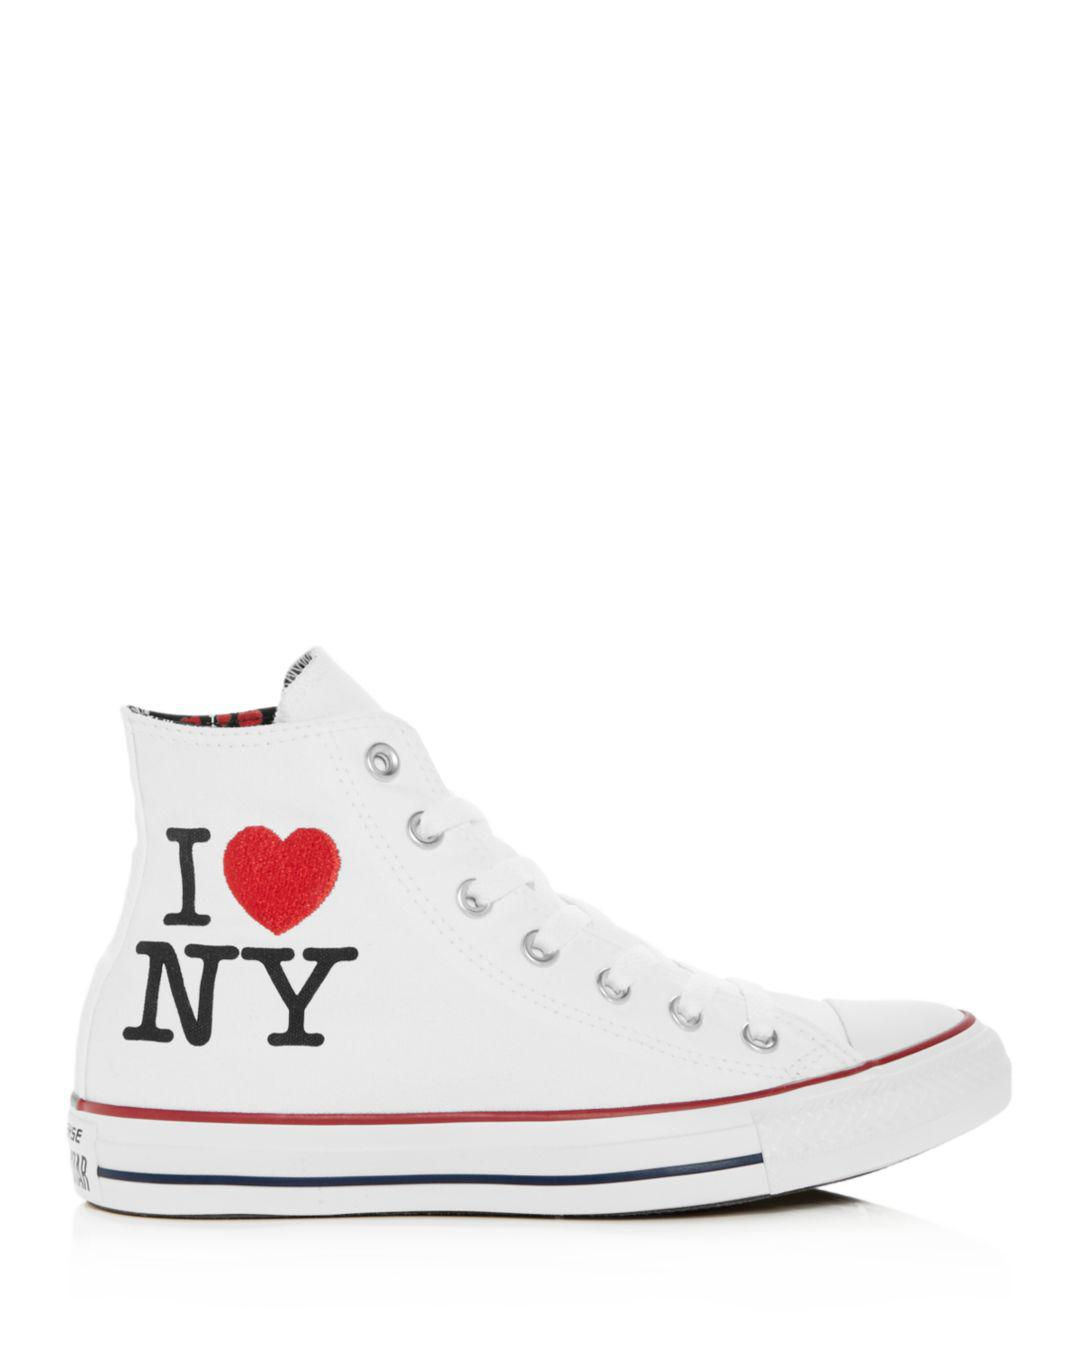 b378bee37f40 Converse Women s Chuck Taylor All Star I Love Ny High Top Sneakers ...